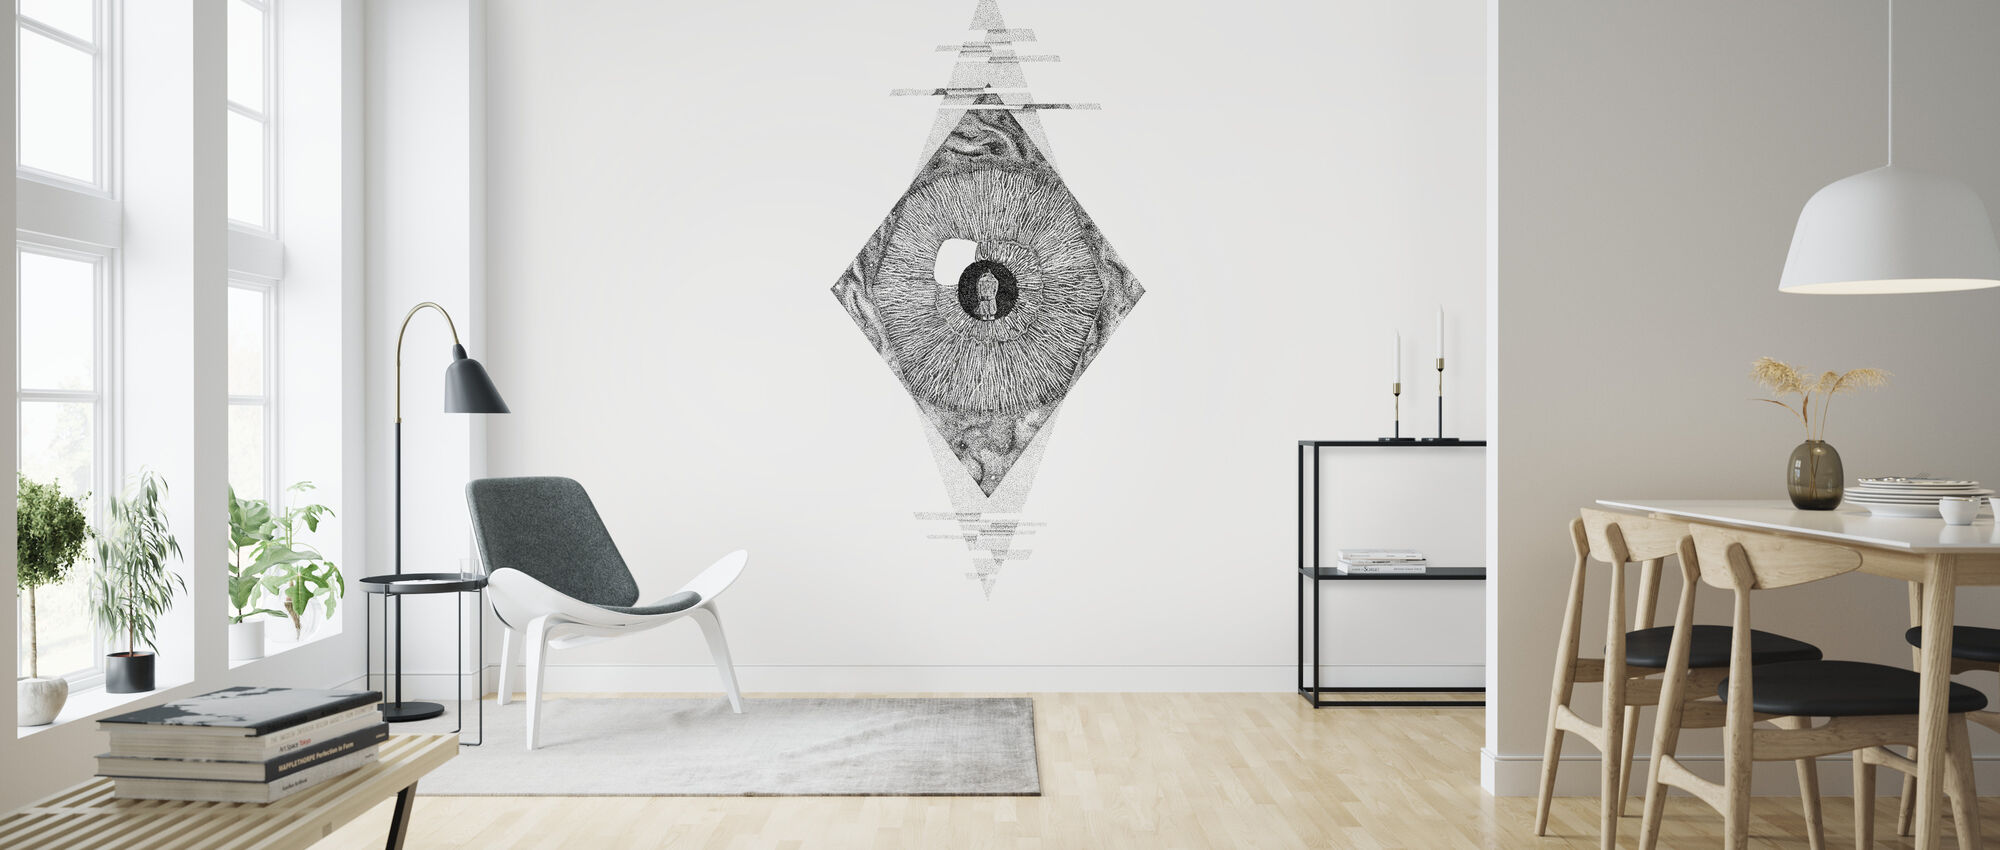 Interrupted Universe IV - Wallpaper - Living Room